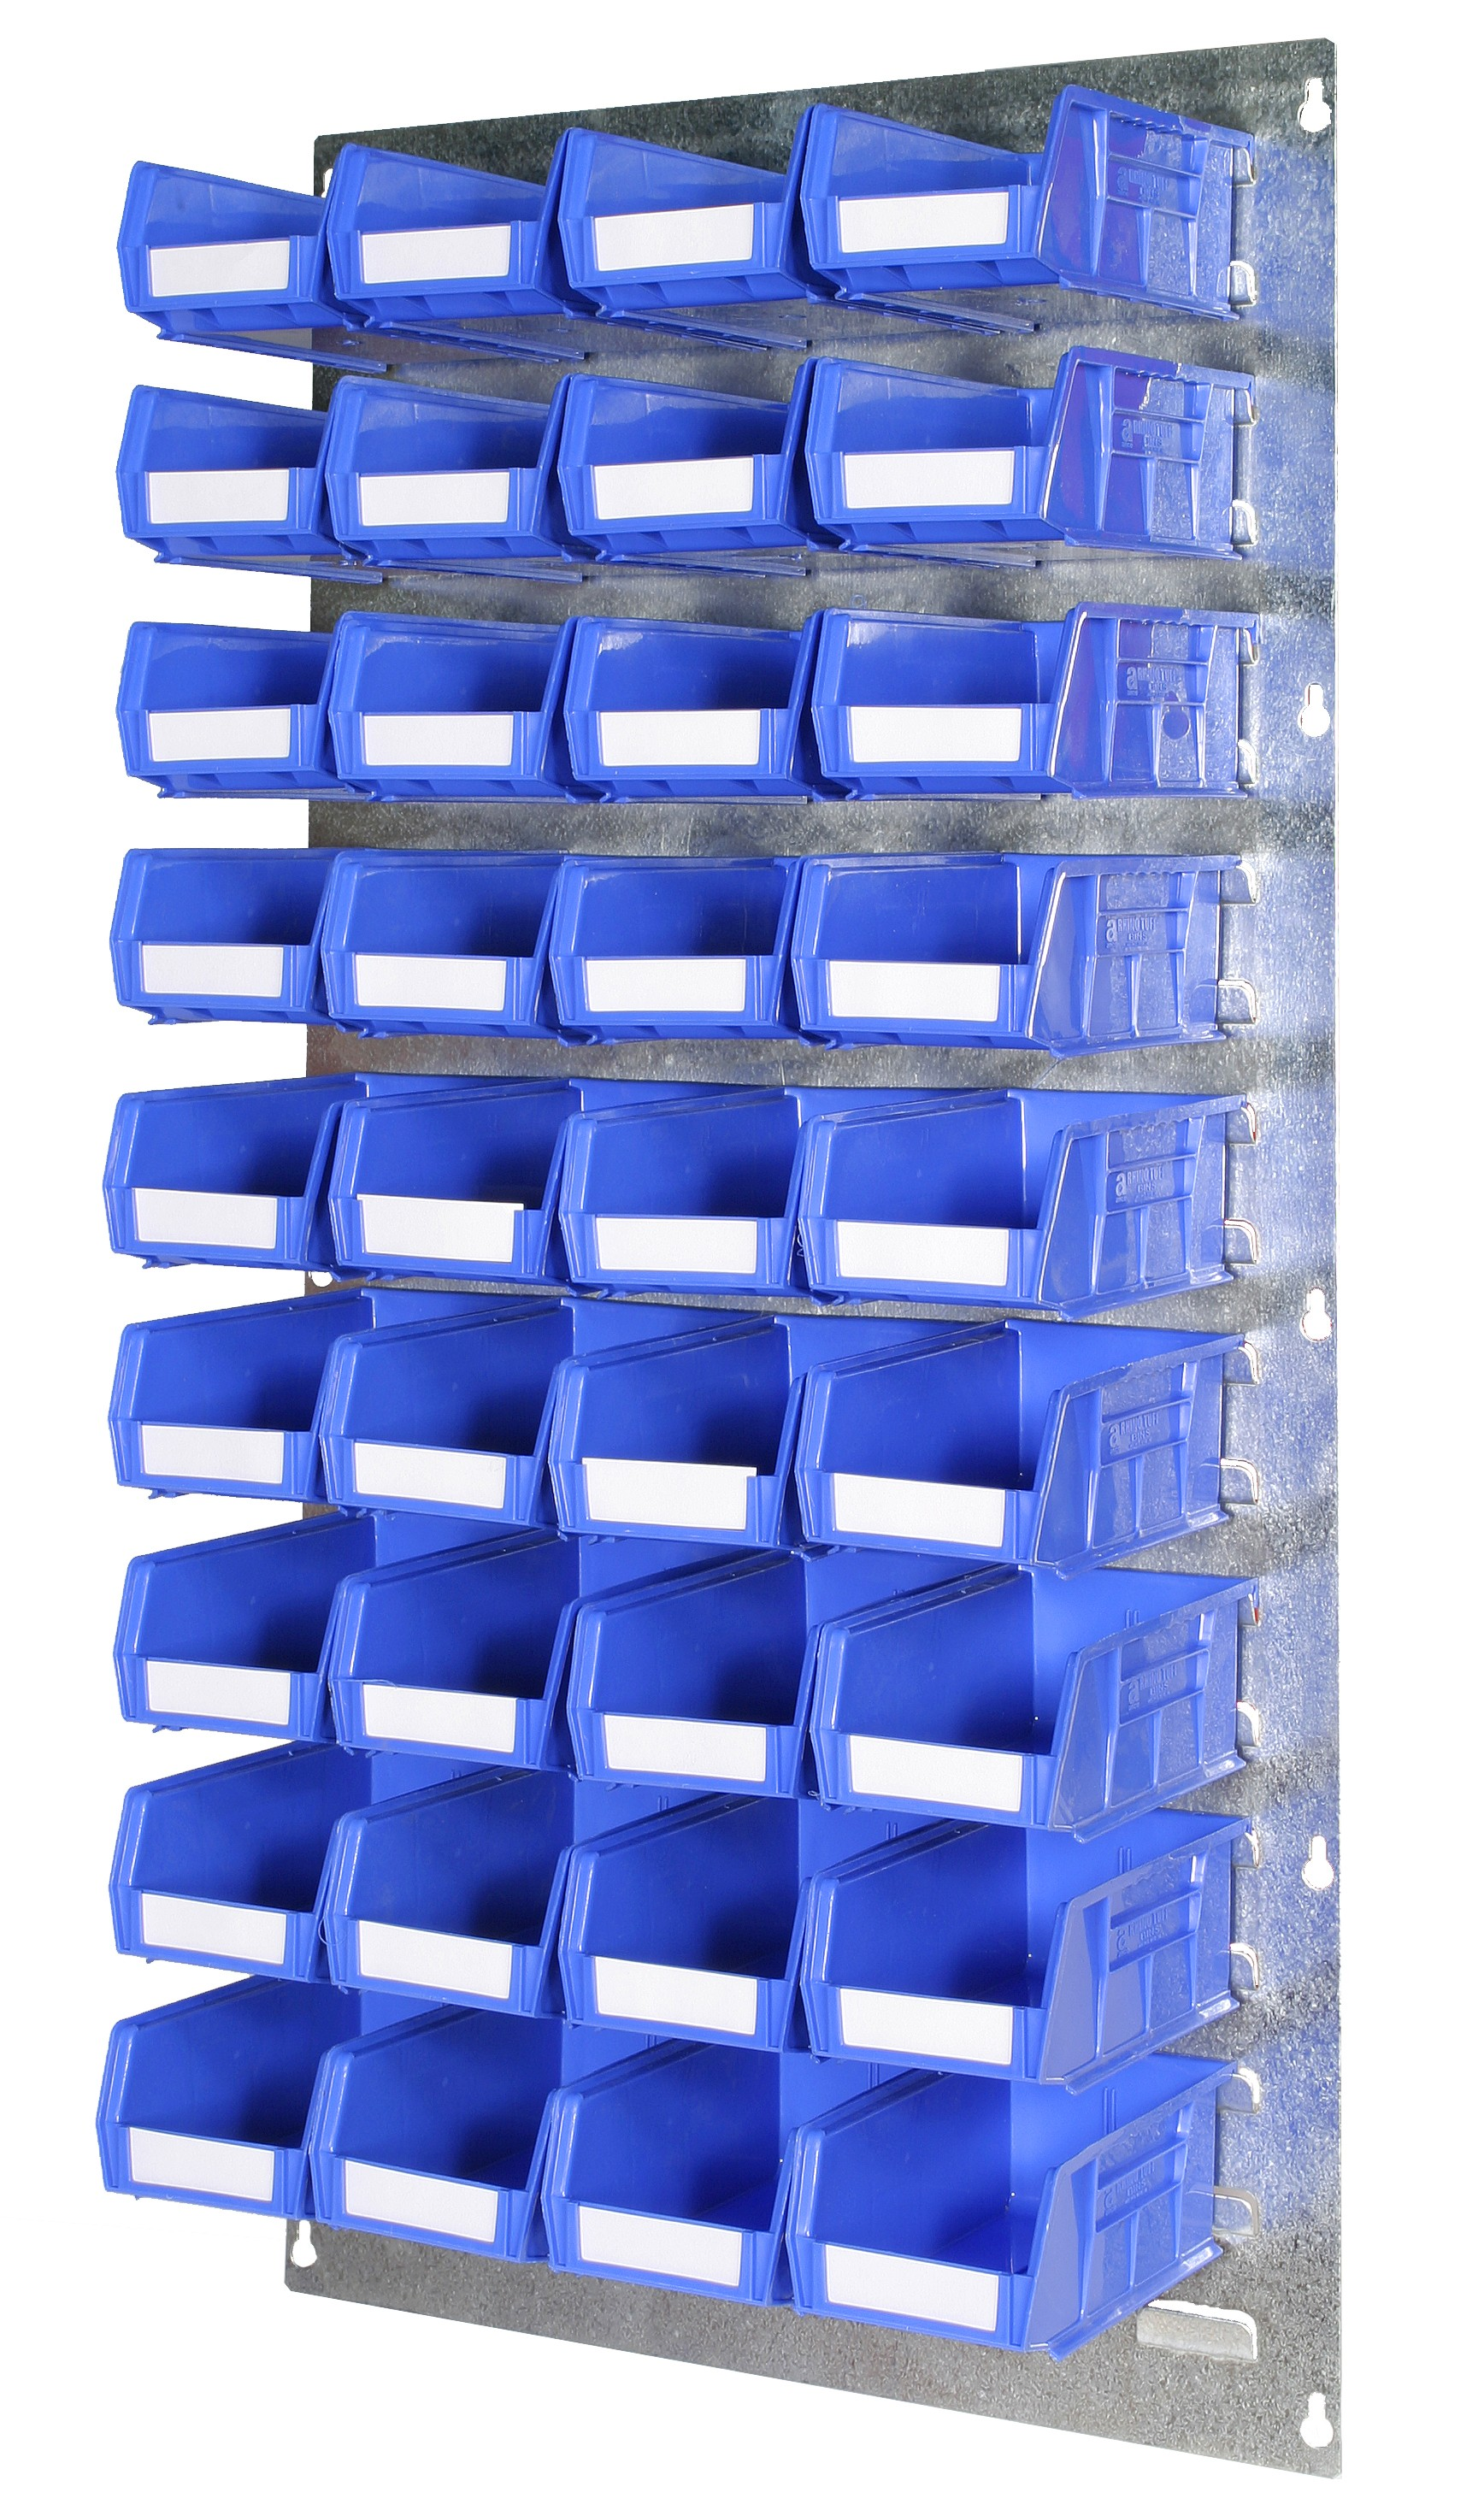 WALL LOUVRE PANELS WITH PLASTIC BINS (DP)